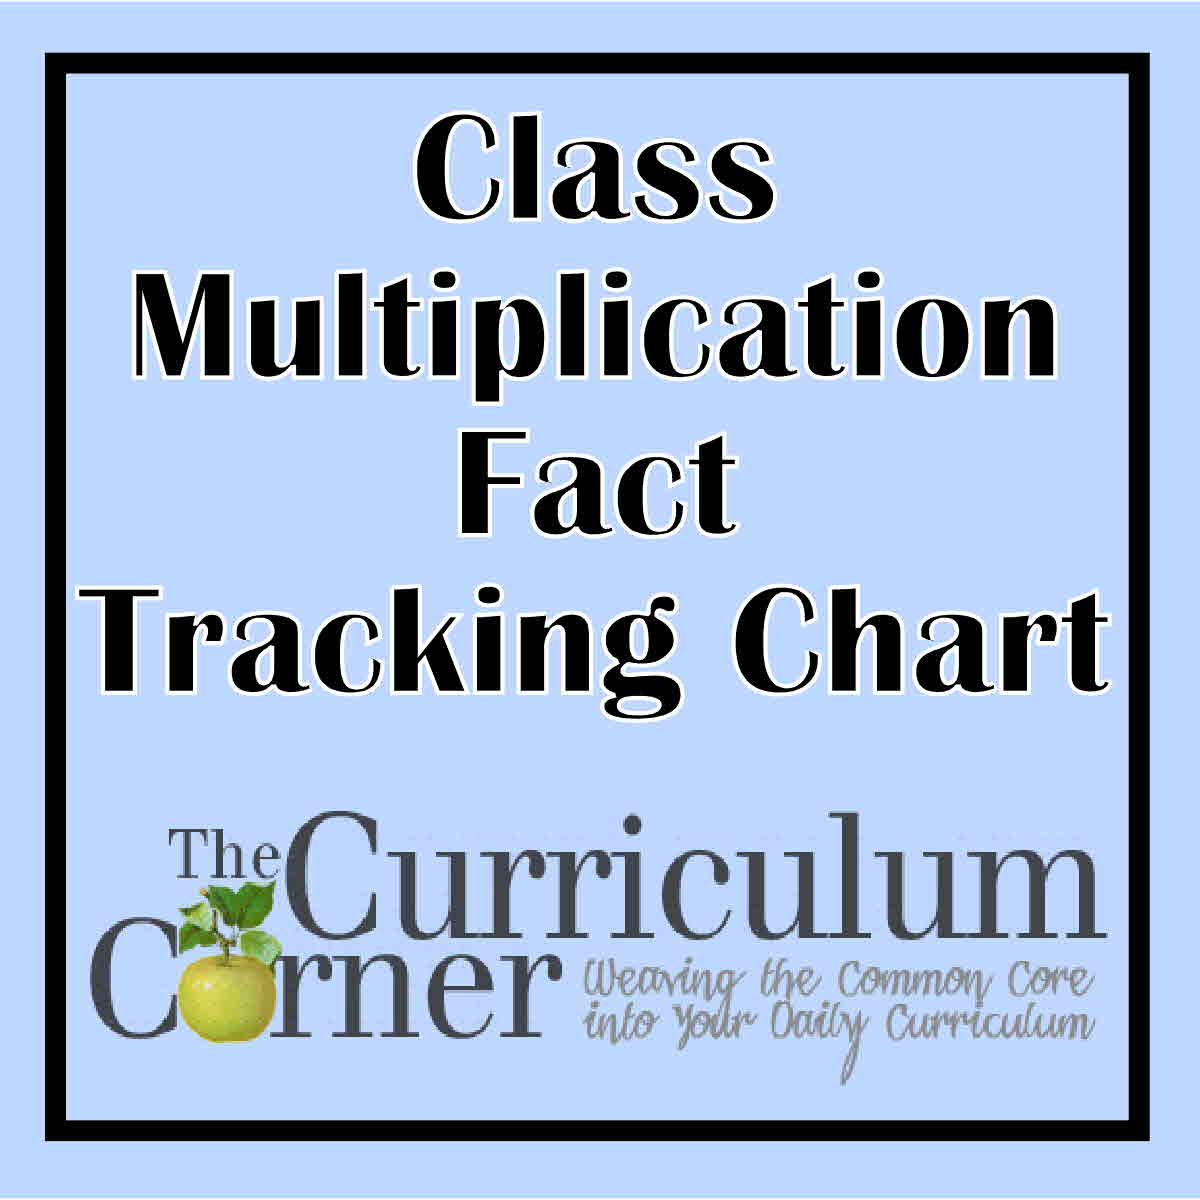 Class multiplication facts tracking chart the curriculum corner 123 class multiplication facts tracking chart geenschuldenfo Gallery